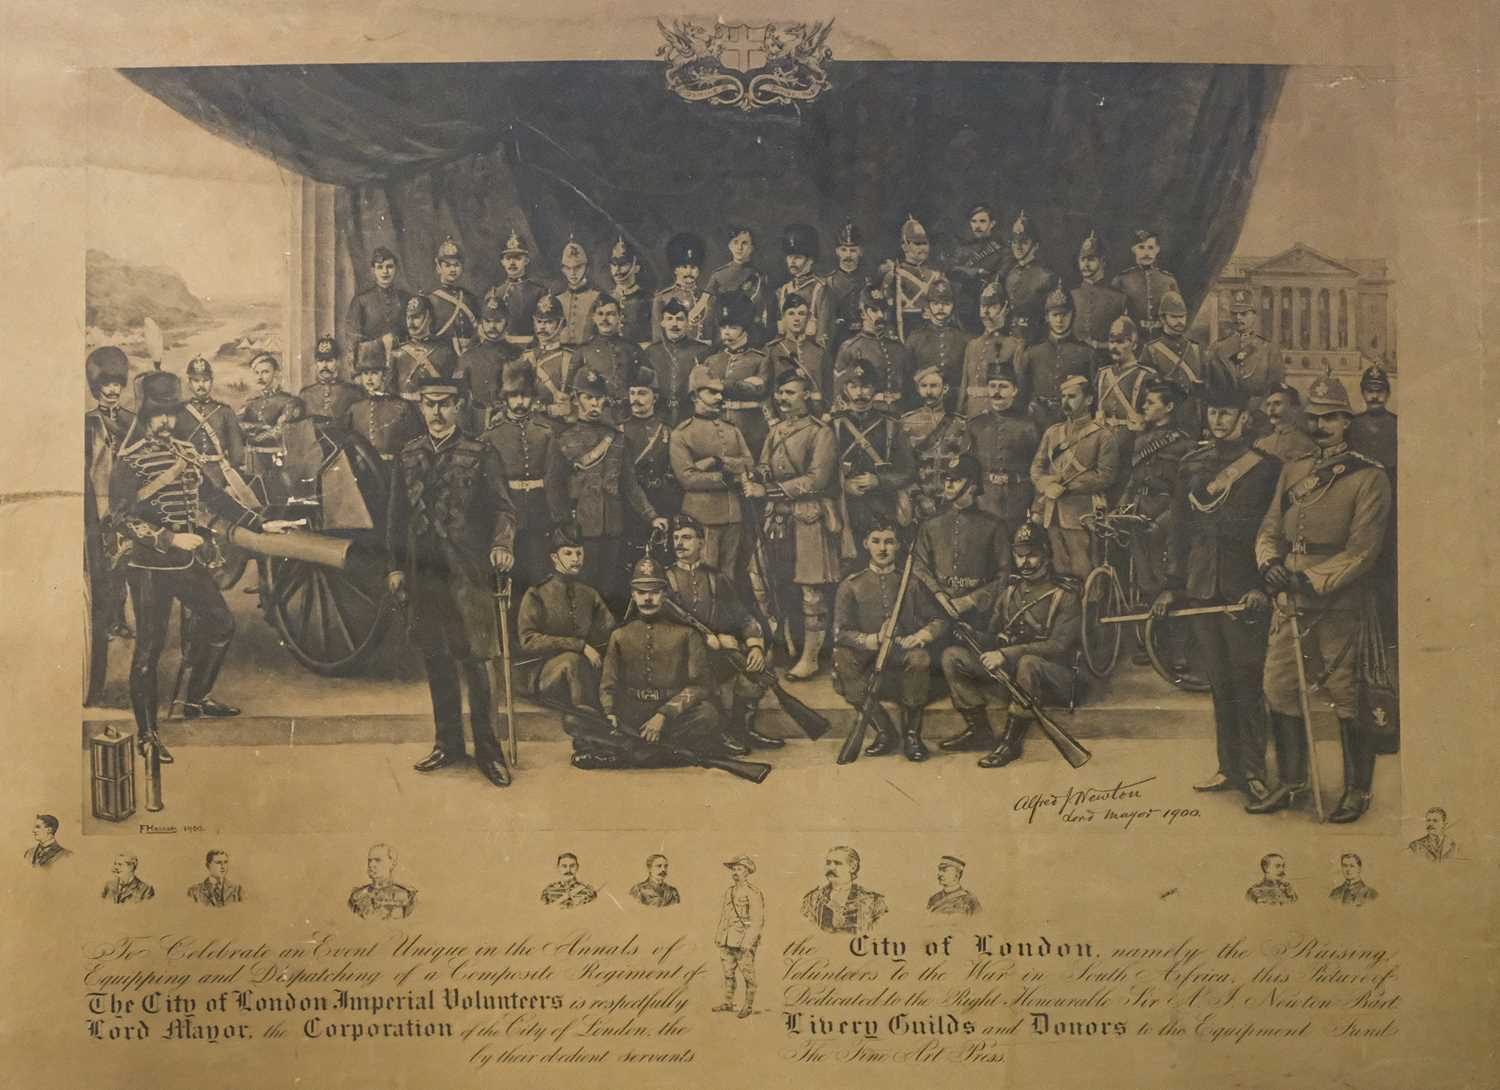 Lot 26 - City of London Imperial Volunteers. Large lithographic print, Fine Art Press, 1900